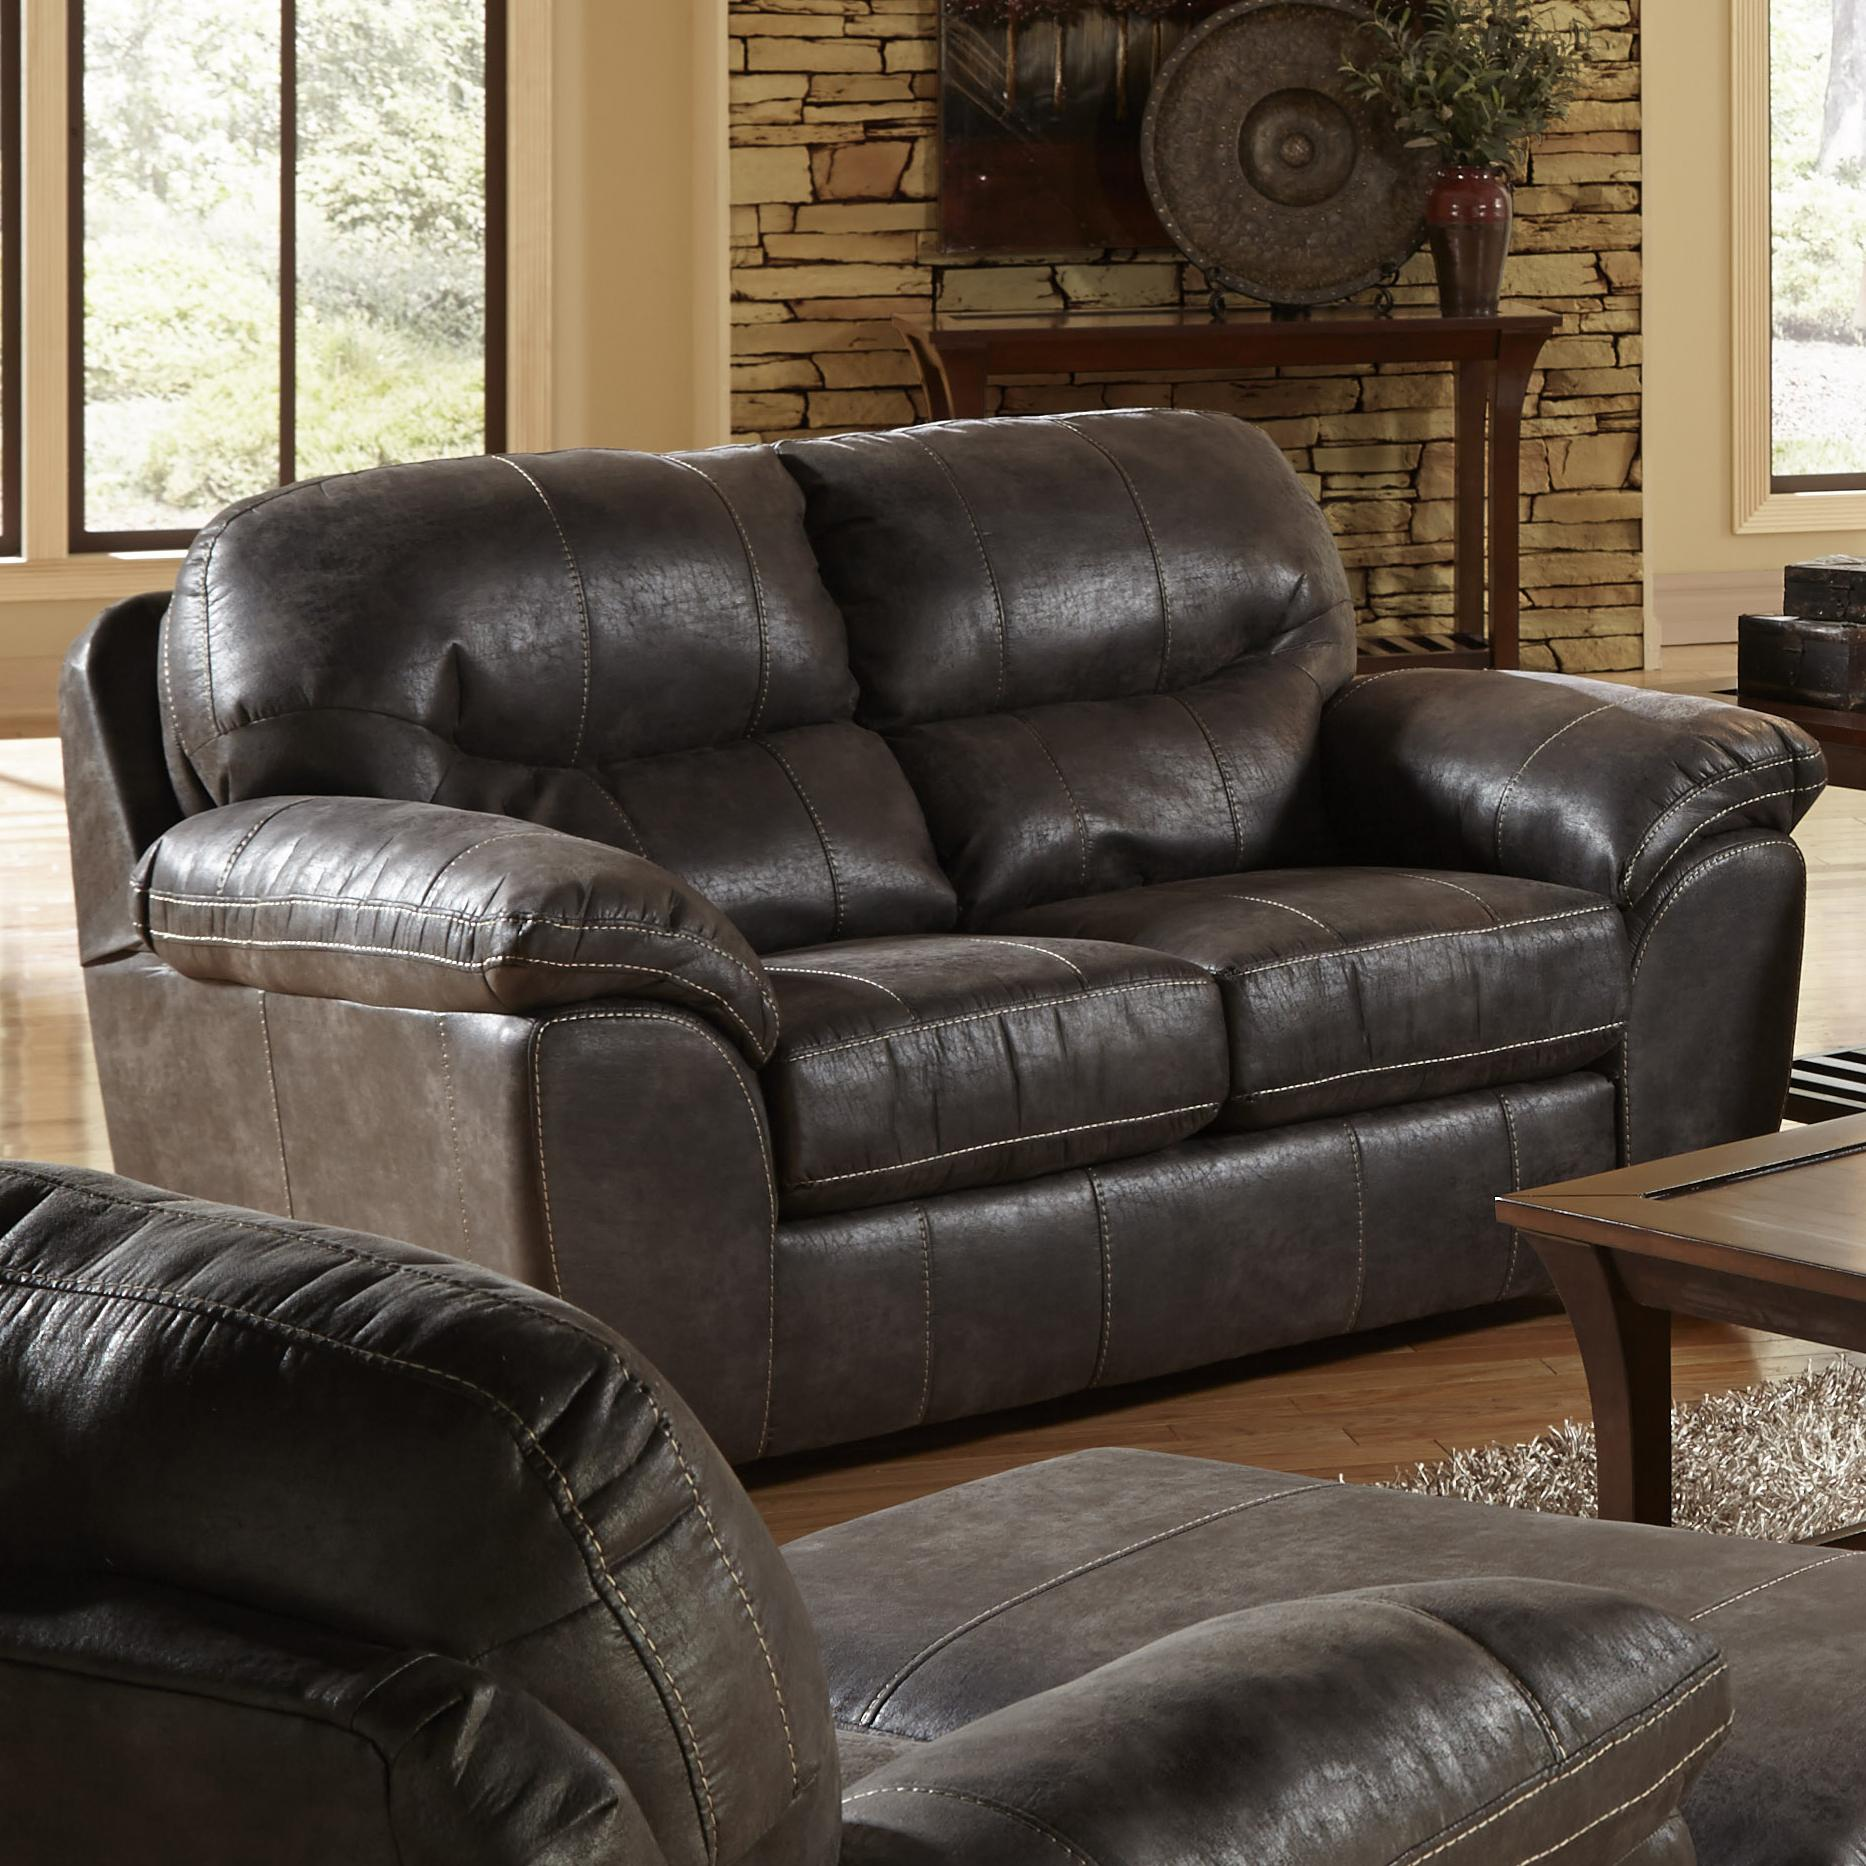 jackson furniture grant loveseat for living rooms and family rooms wayside furniture love seats. Black Bedroom Furniture Sets. Home Design Ideas